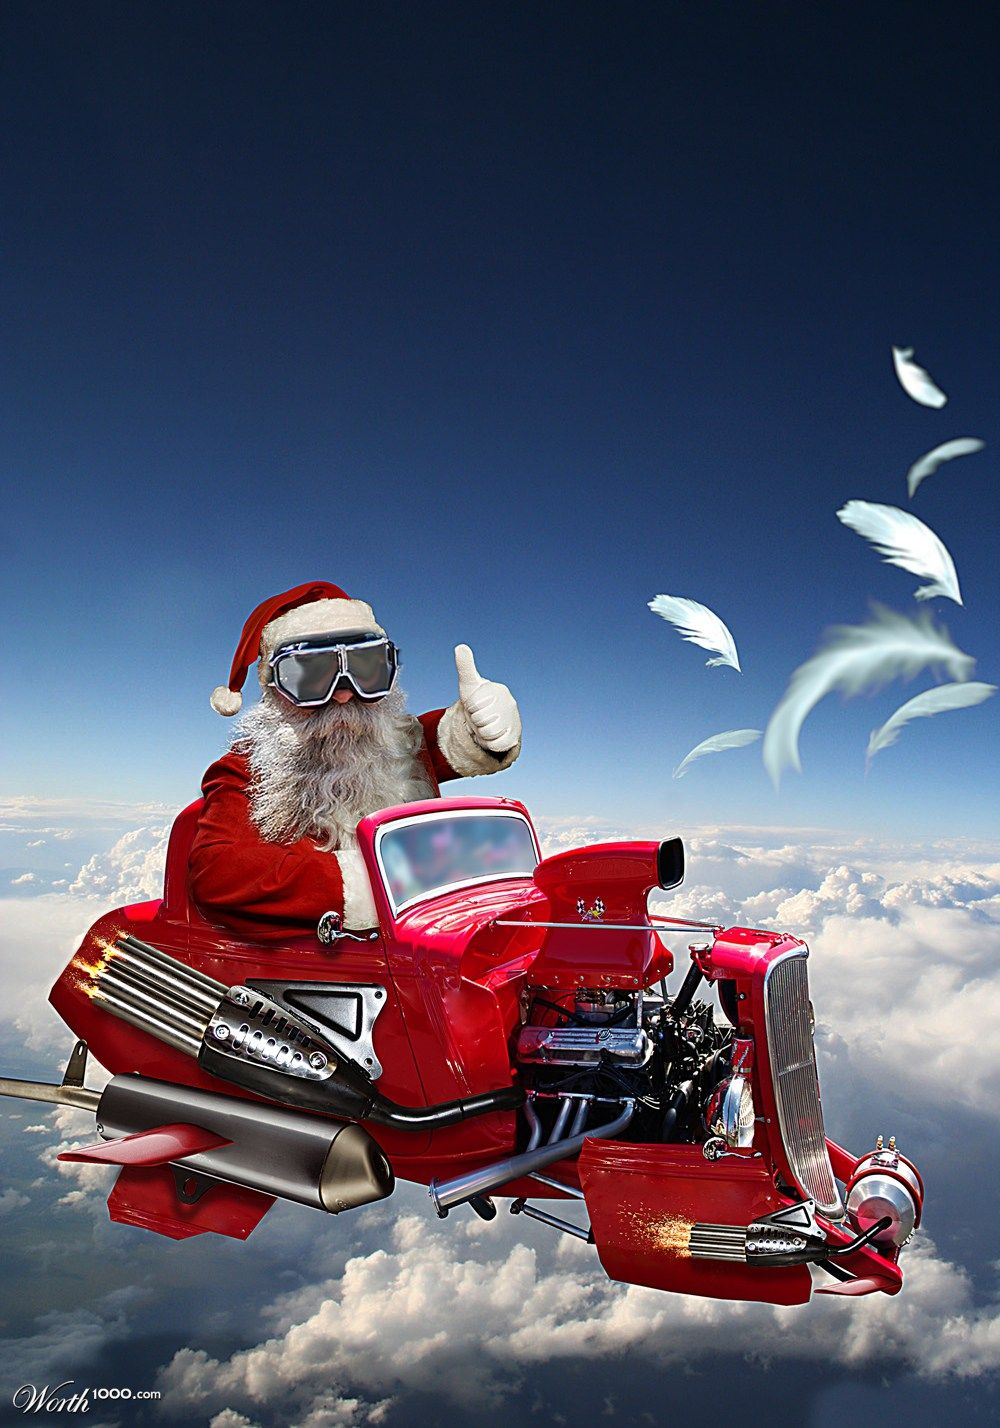 Submission for 'The Secret Life of Santa Claus